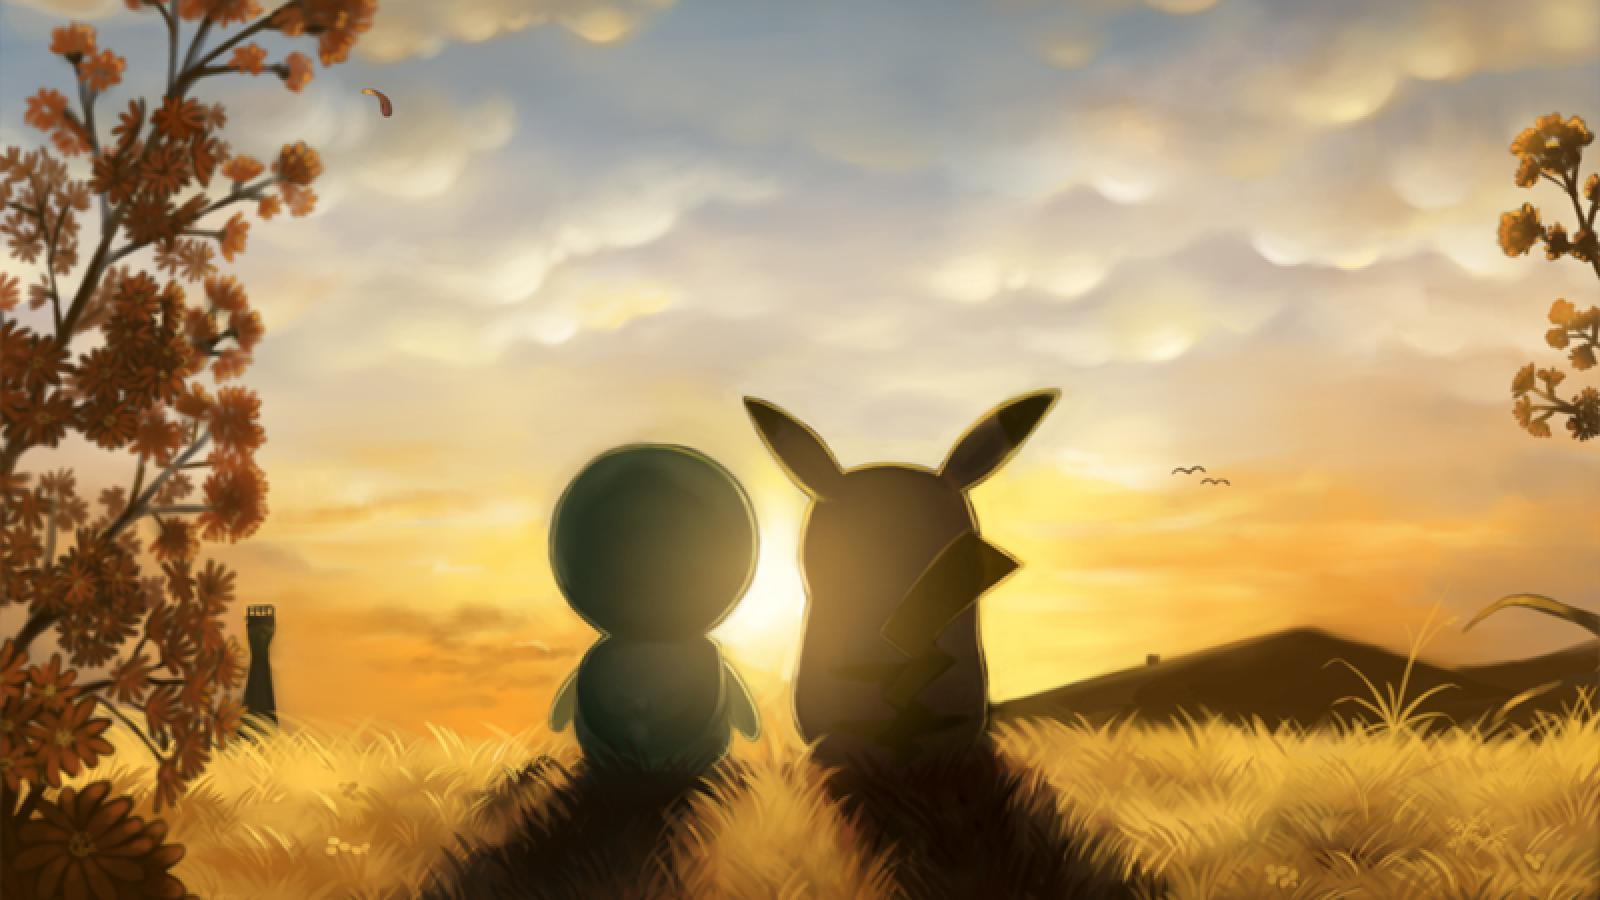 pikachu and piplup sunrise #879501